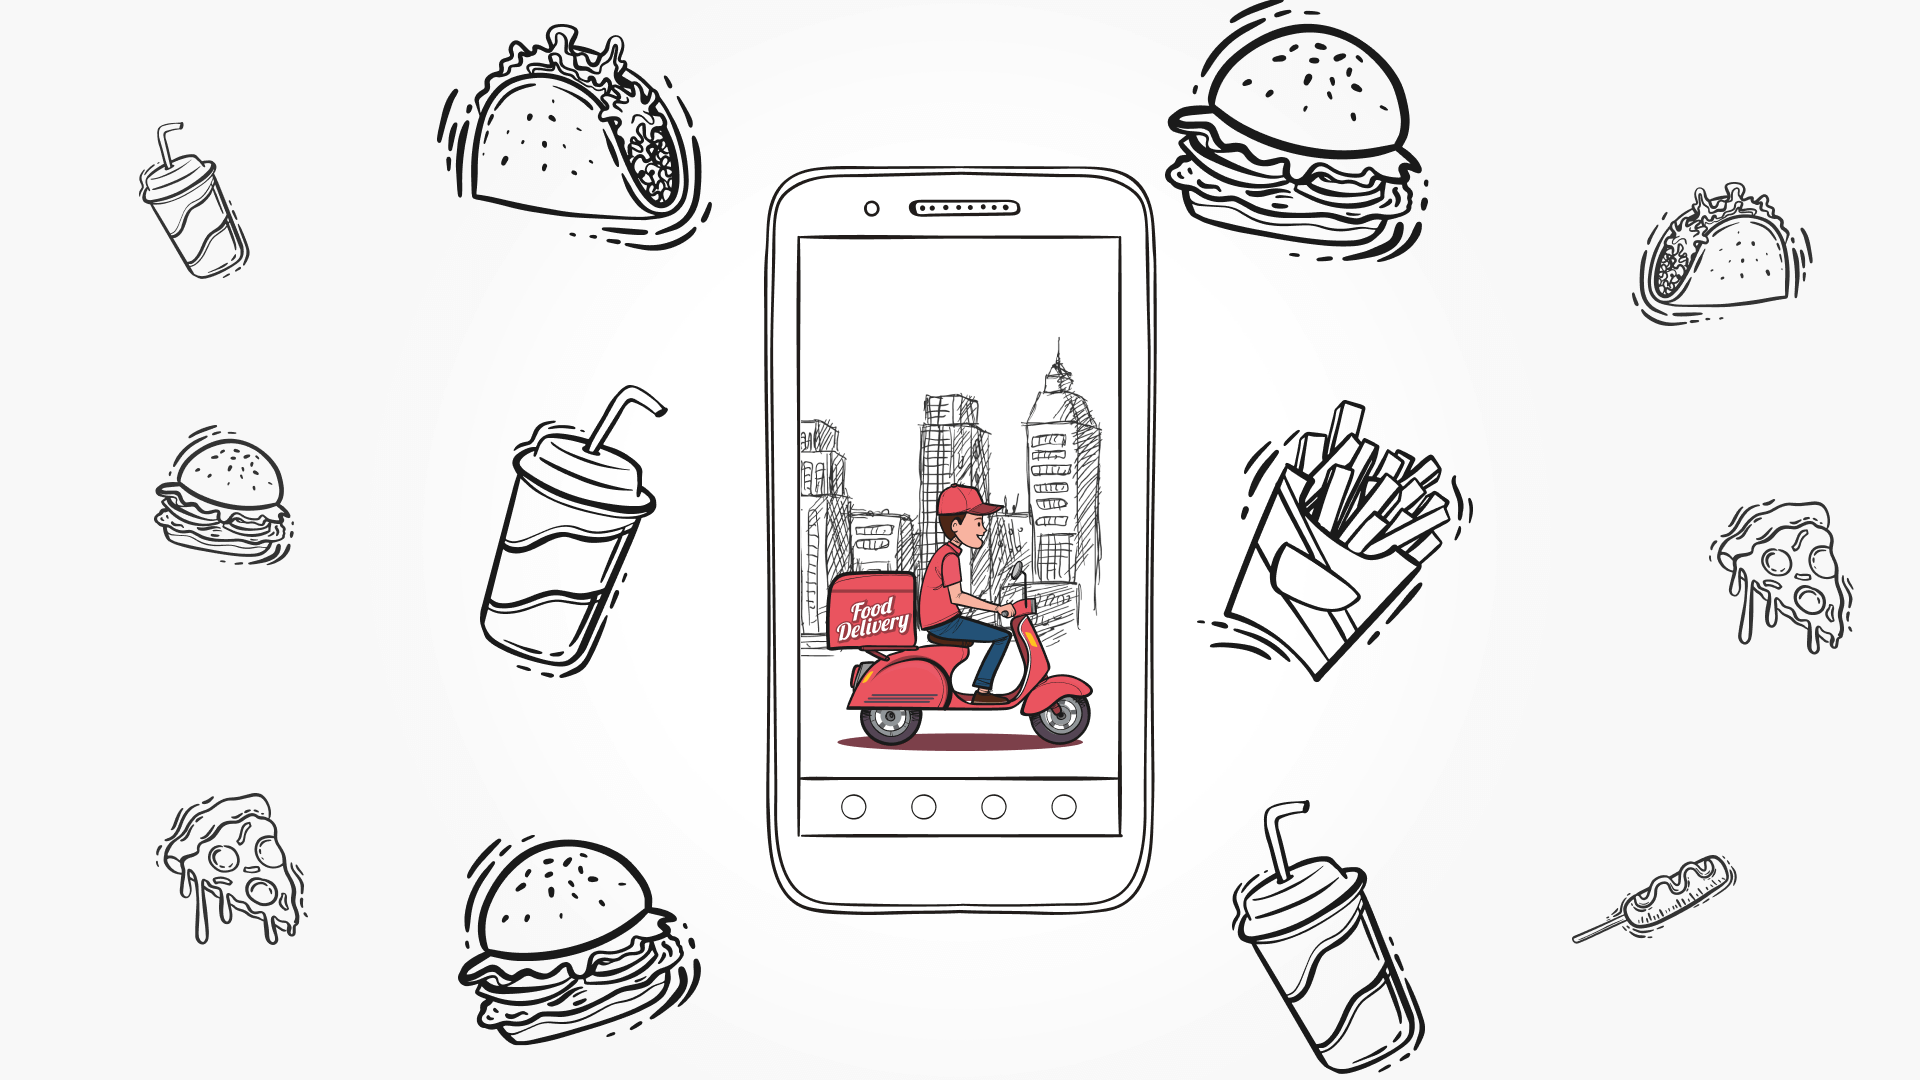 10-Minute Guide to On-Demand Food Delivery App Development